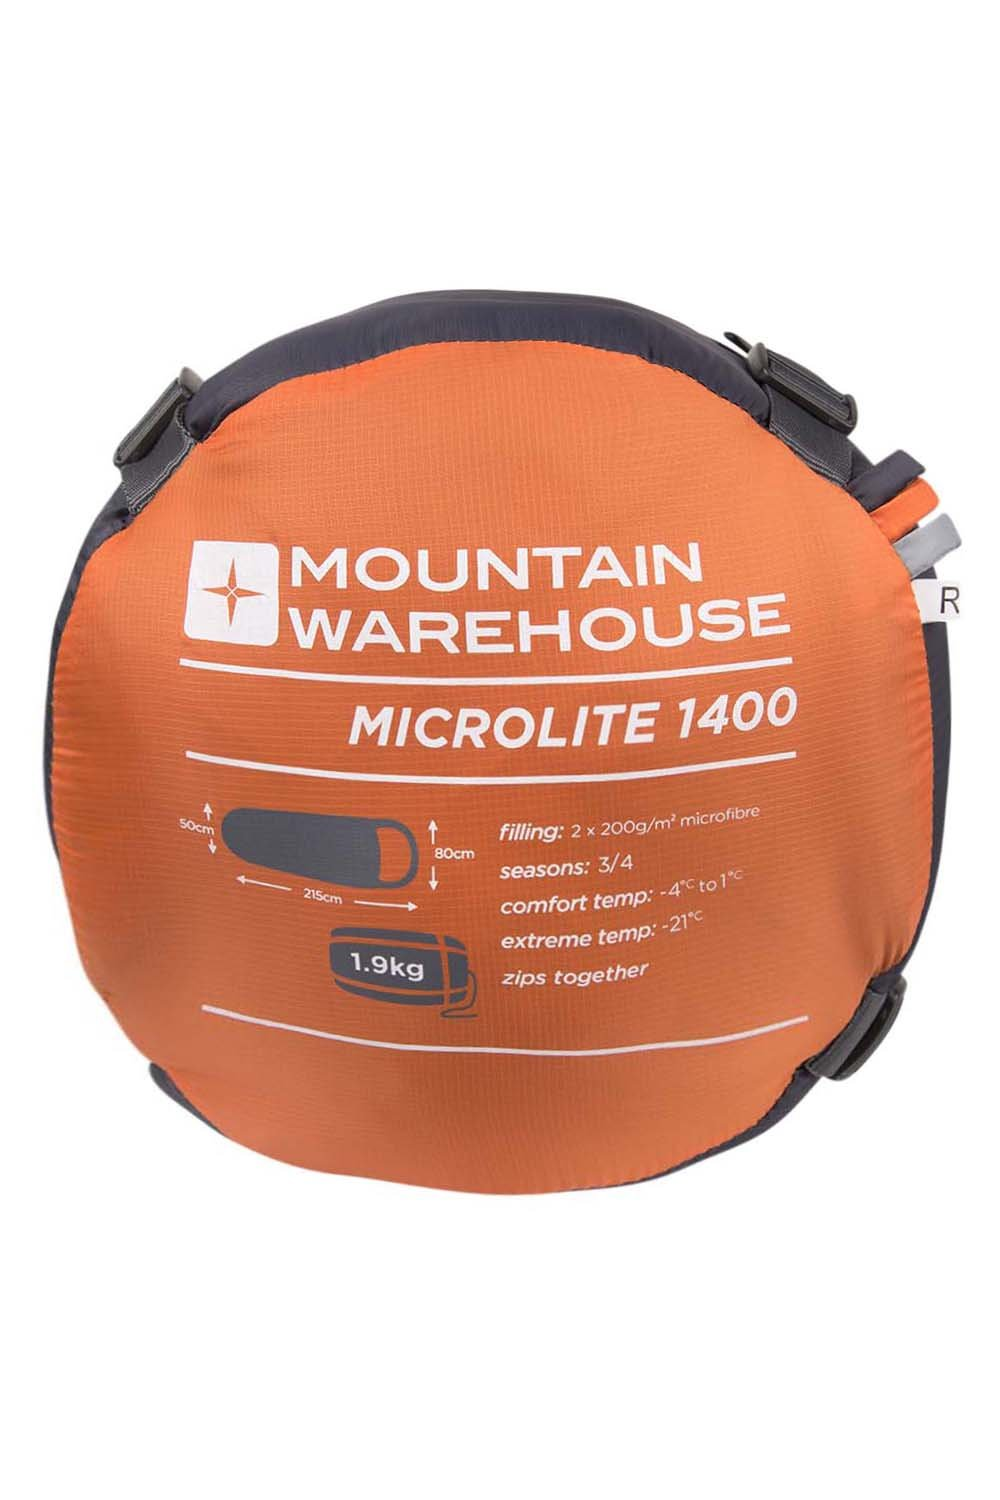 Mountain Warehouse Saco de Dormir Microlite 1400: Amazon.es: Deportes y aire libre